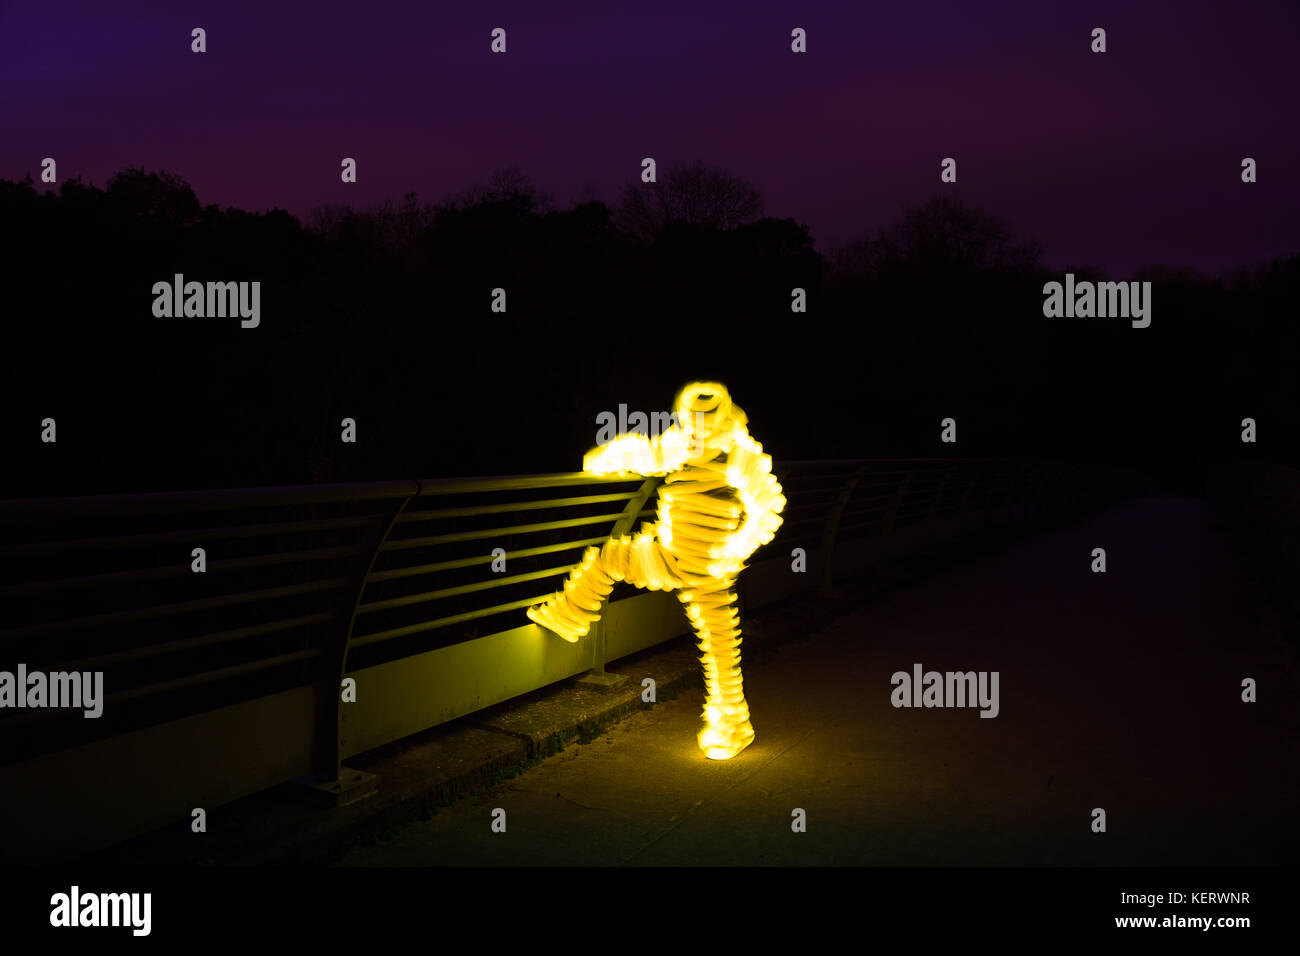 An unexplained, glowing figure stands alone on a bridge in the darkness. Night scene. - Stock Image